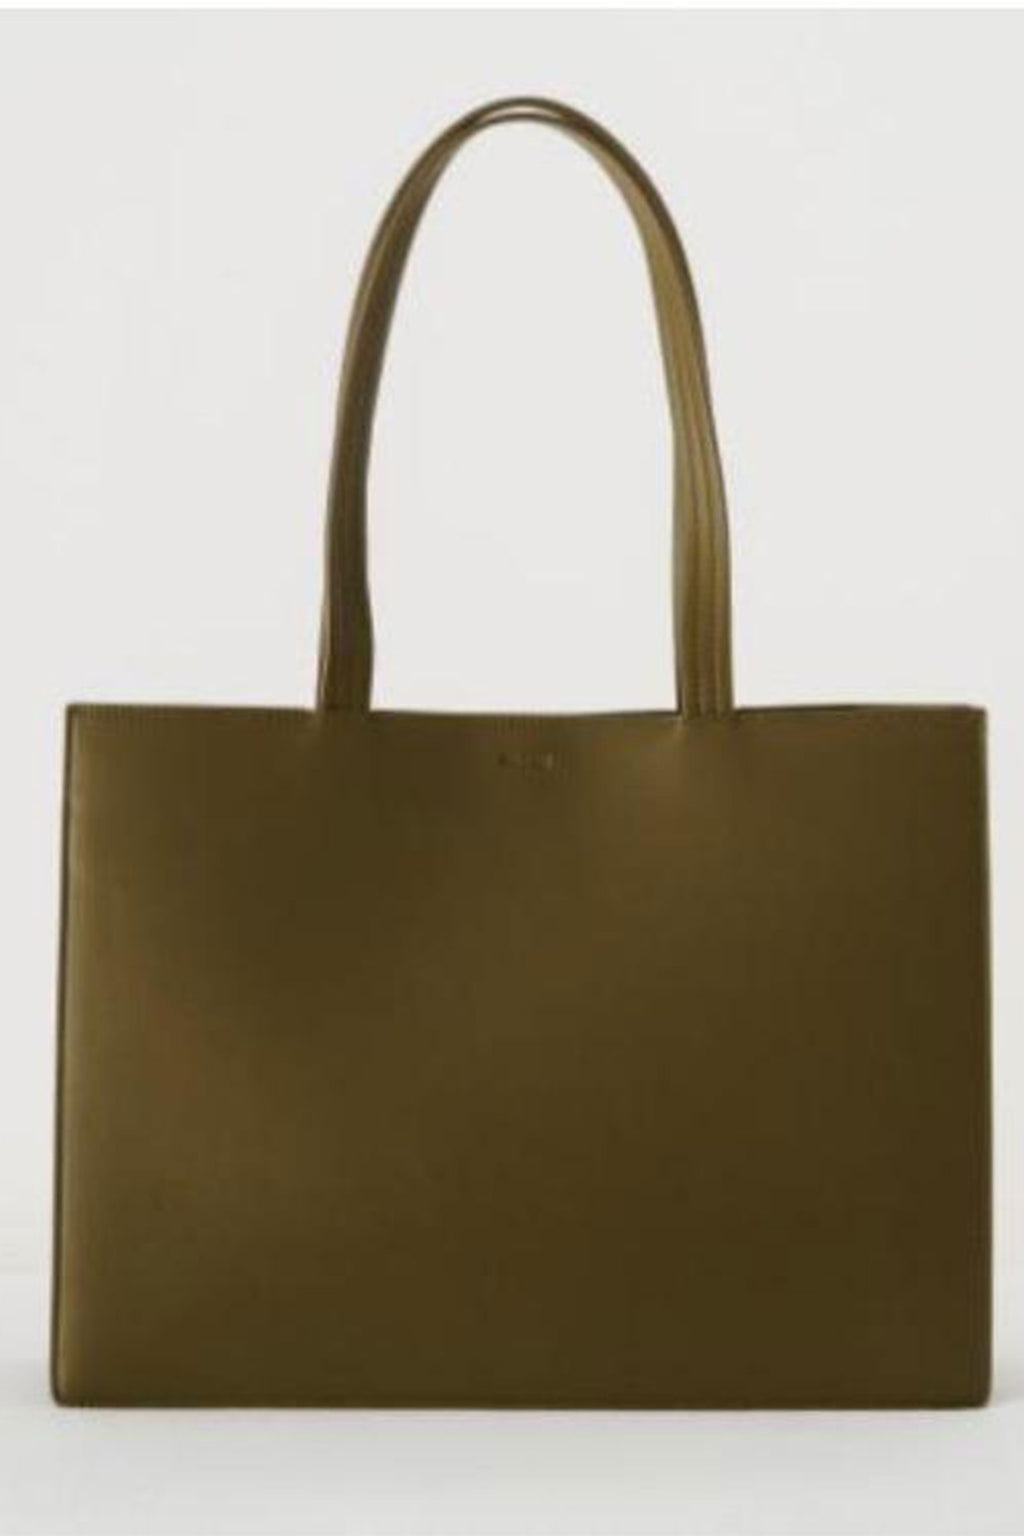 Baggu Large Leather Retail Tote in Kelp